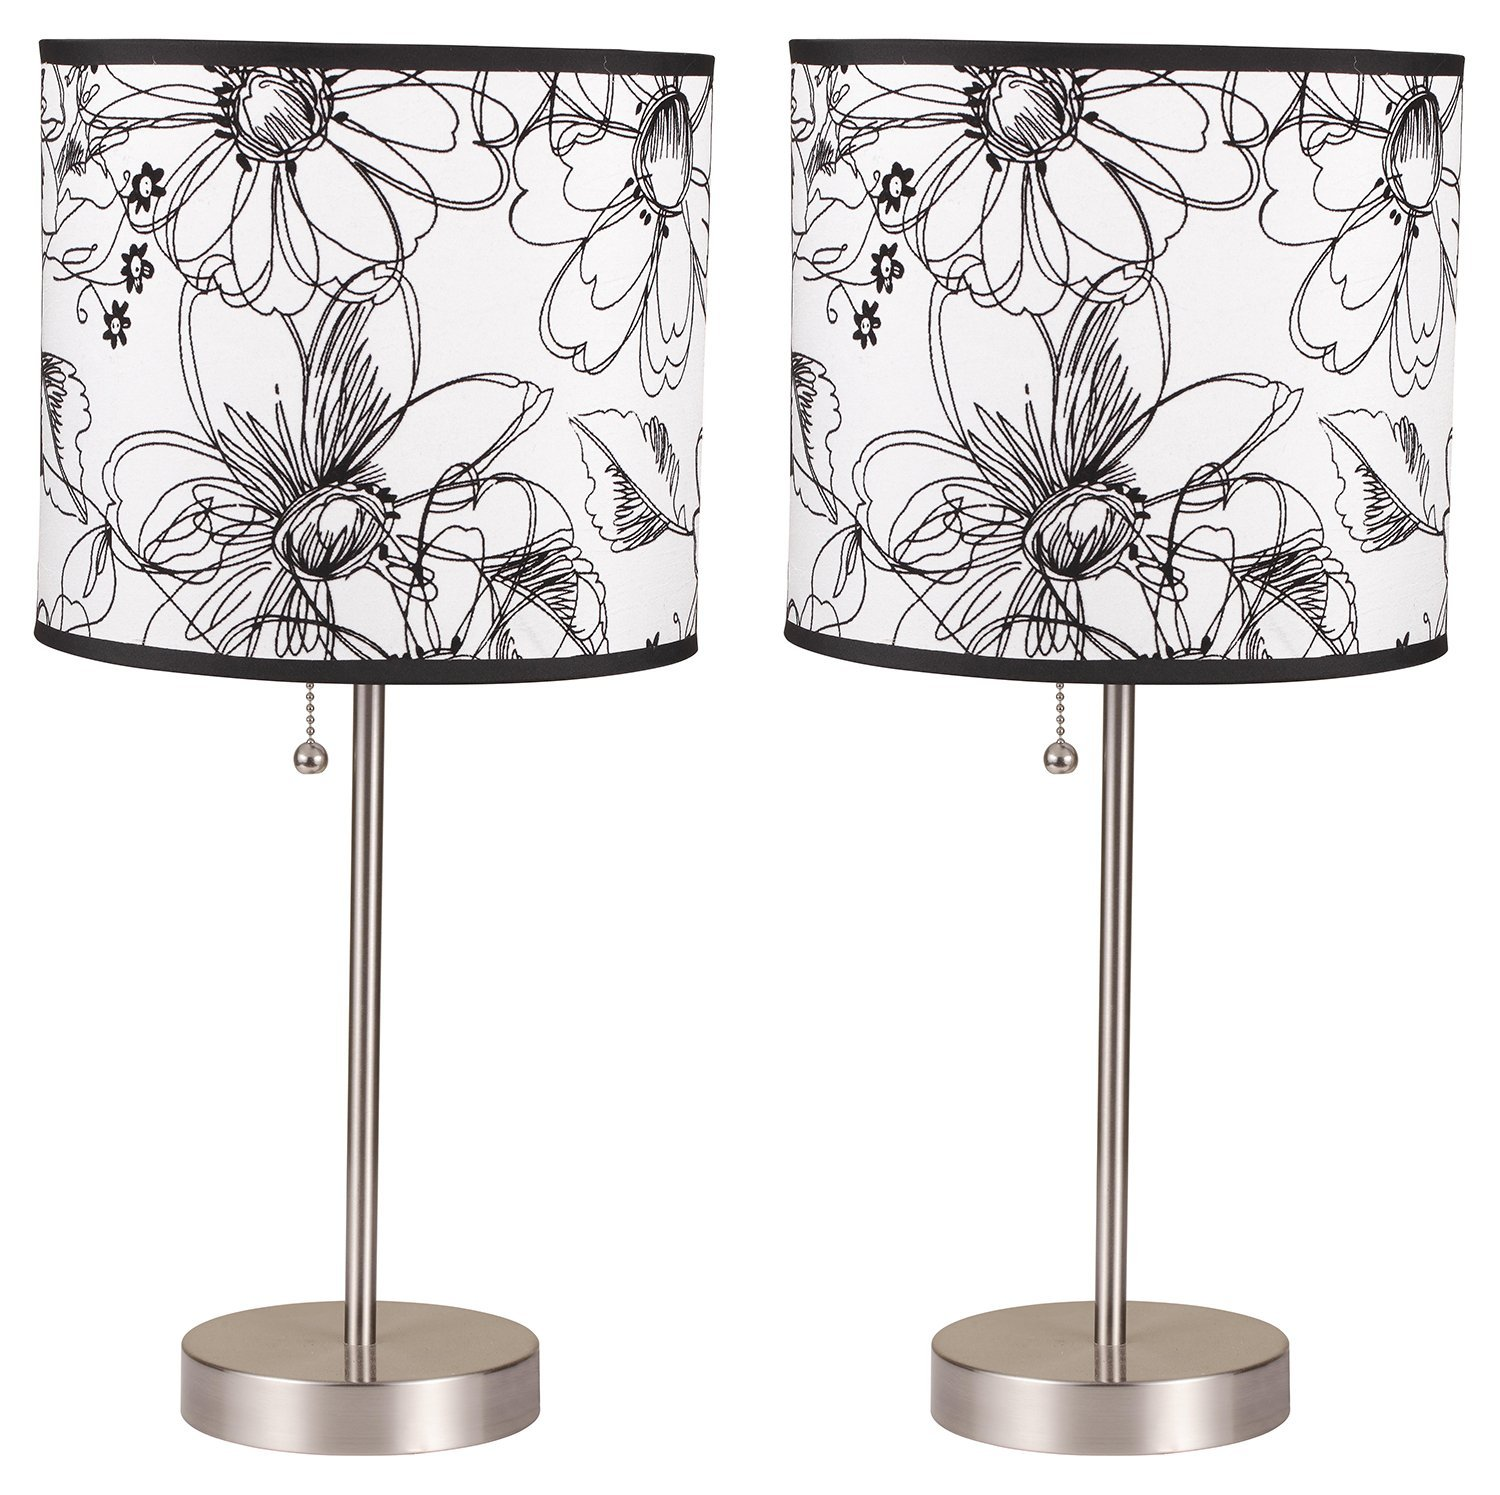 Milton Greens Stars A8312AT-S Ruslana Contemporary Table Lamp with Flower Print, 18.5-Inch, Set of 2